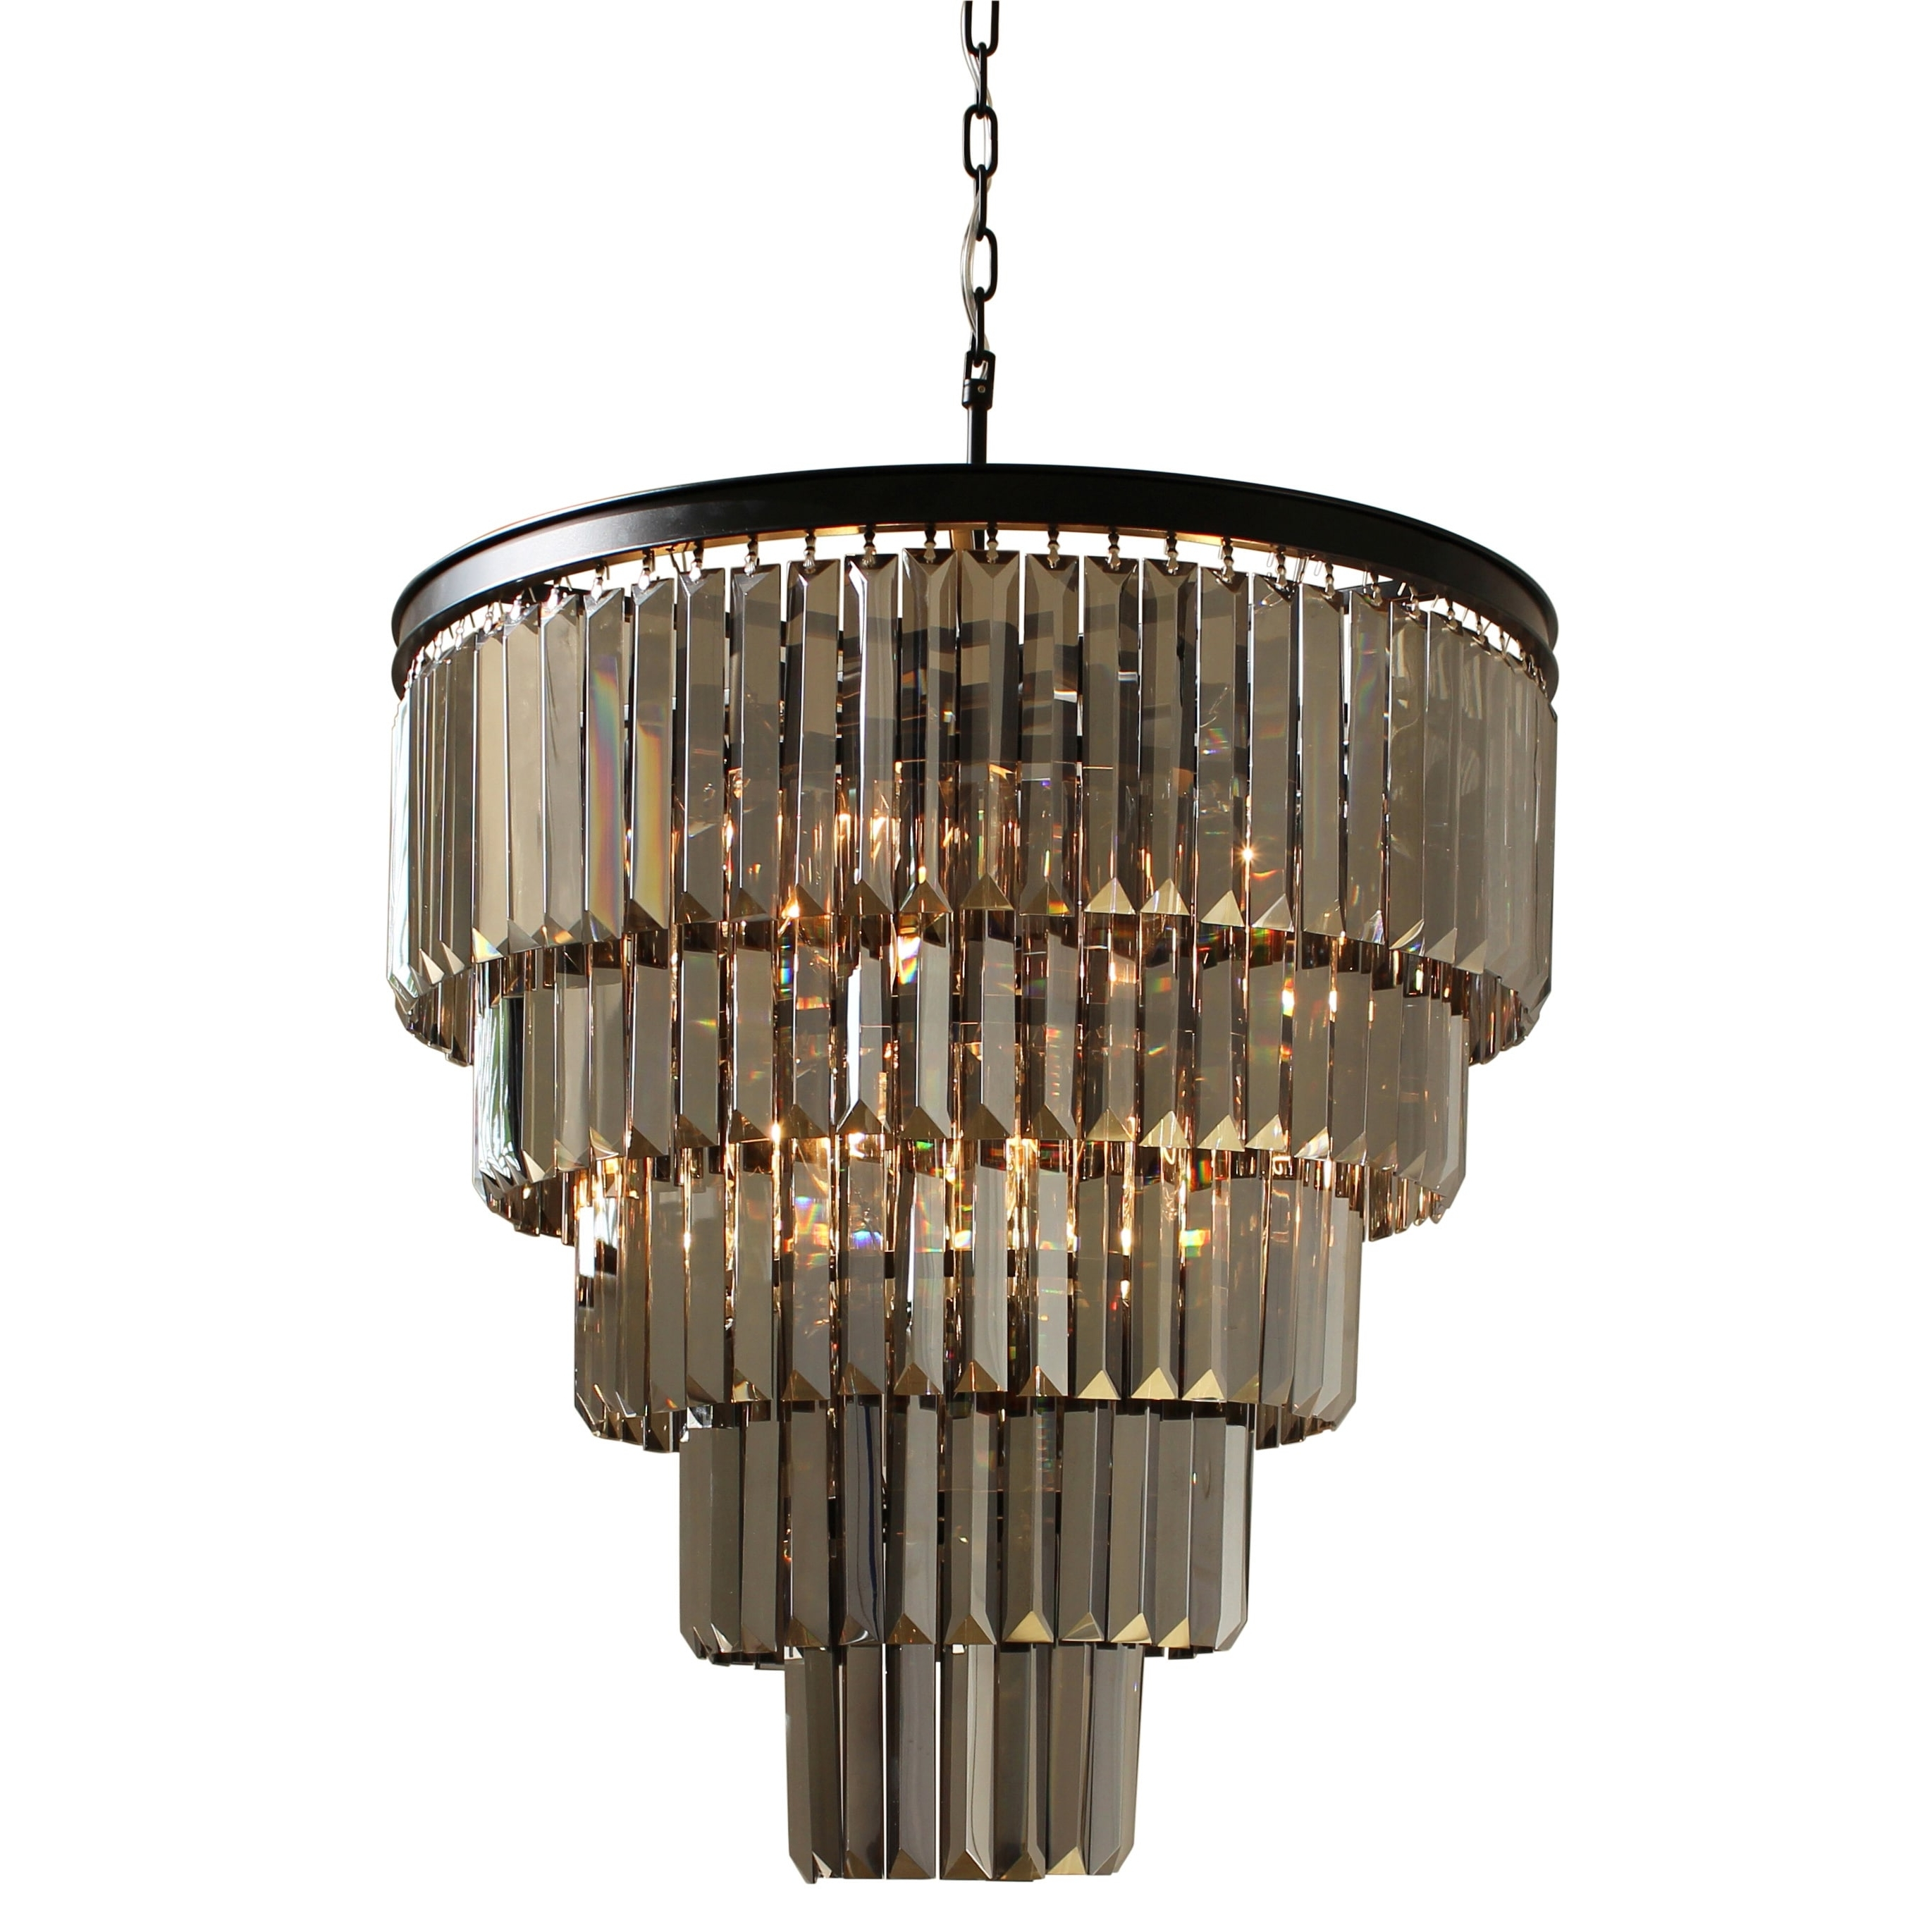 Smoked Glass Chandelier Regarding Preferred D'angelo 5 Tier Iron Round Fringe Crystal Smoked Glass Chandelier (View 9 of 15)